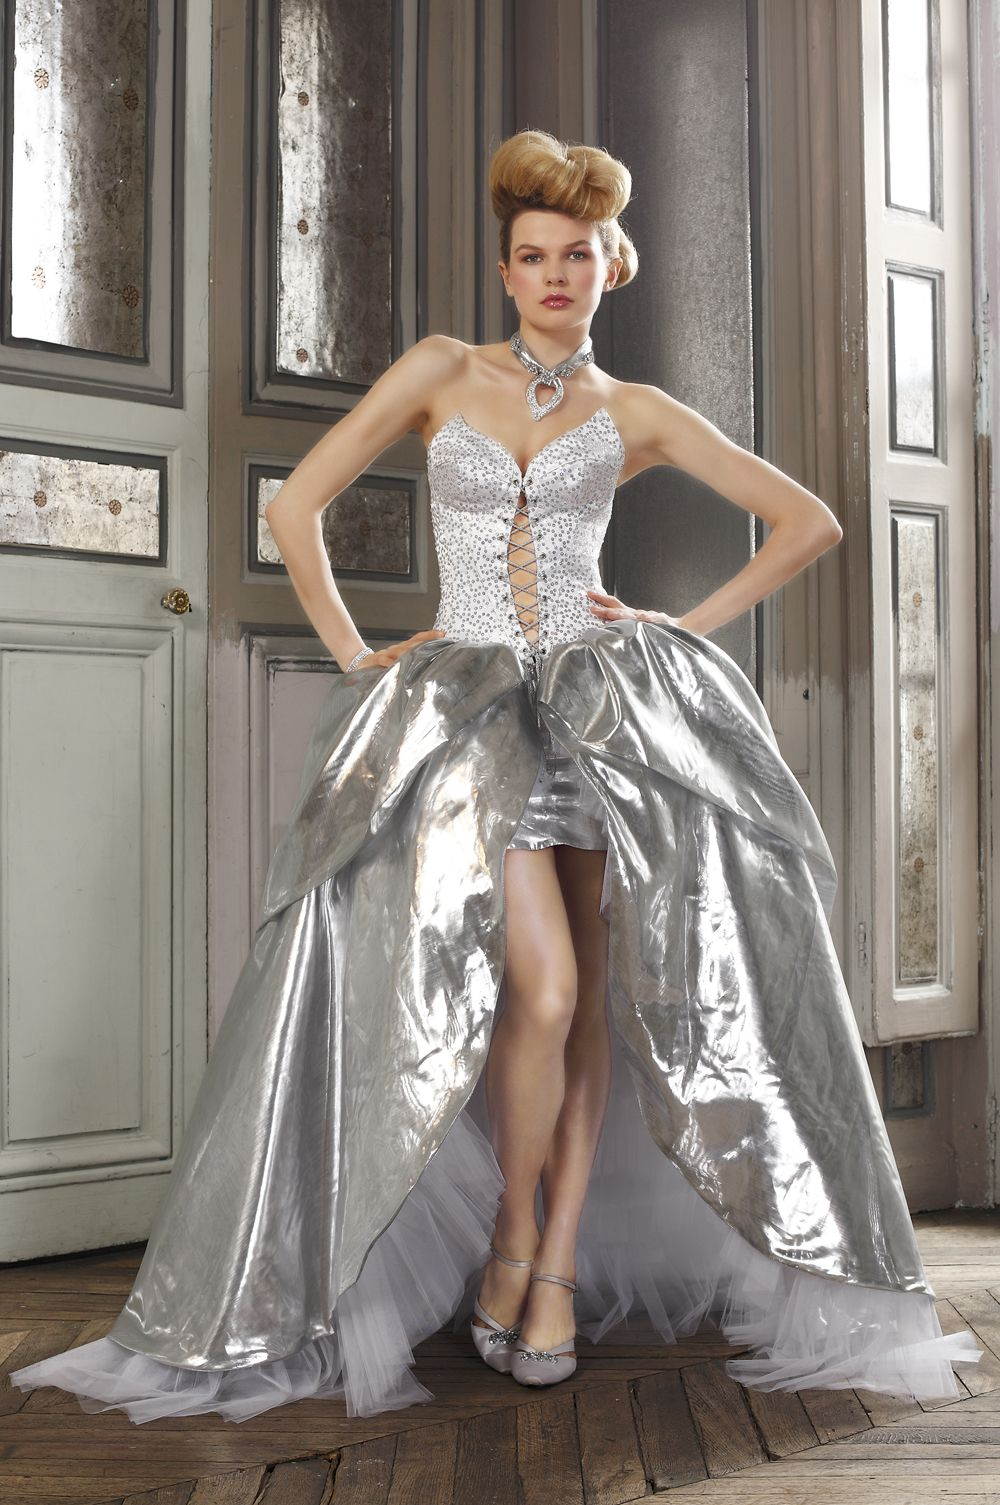 Ely shay wedding dress collections 2012 catechu silver for Silver wedding dresses for bridesmaids